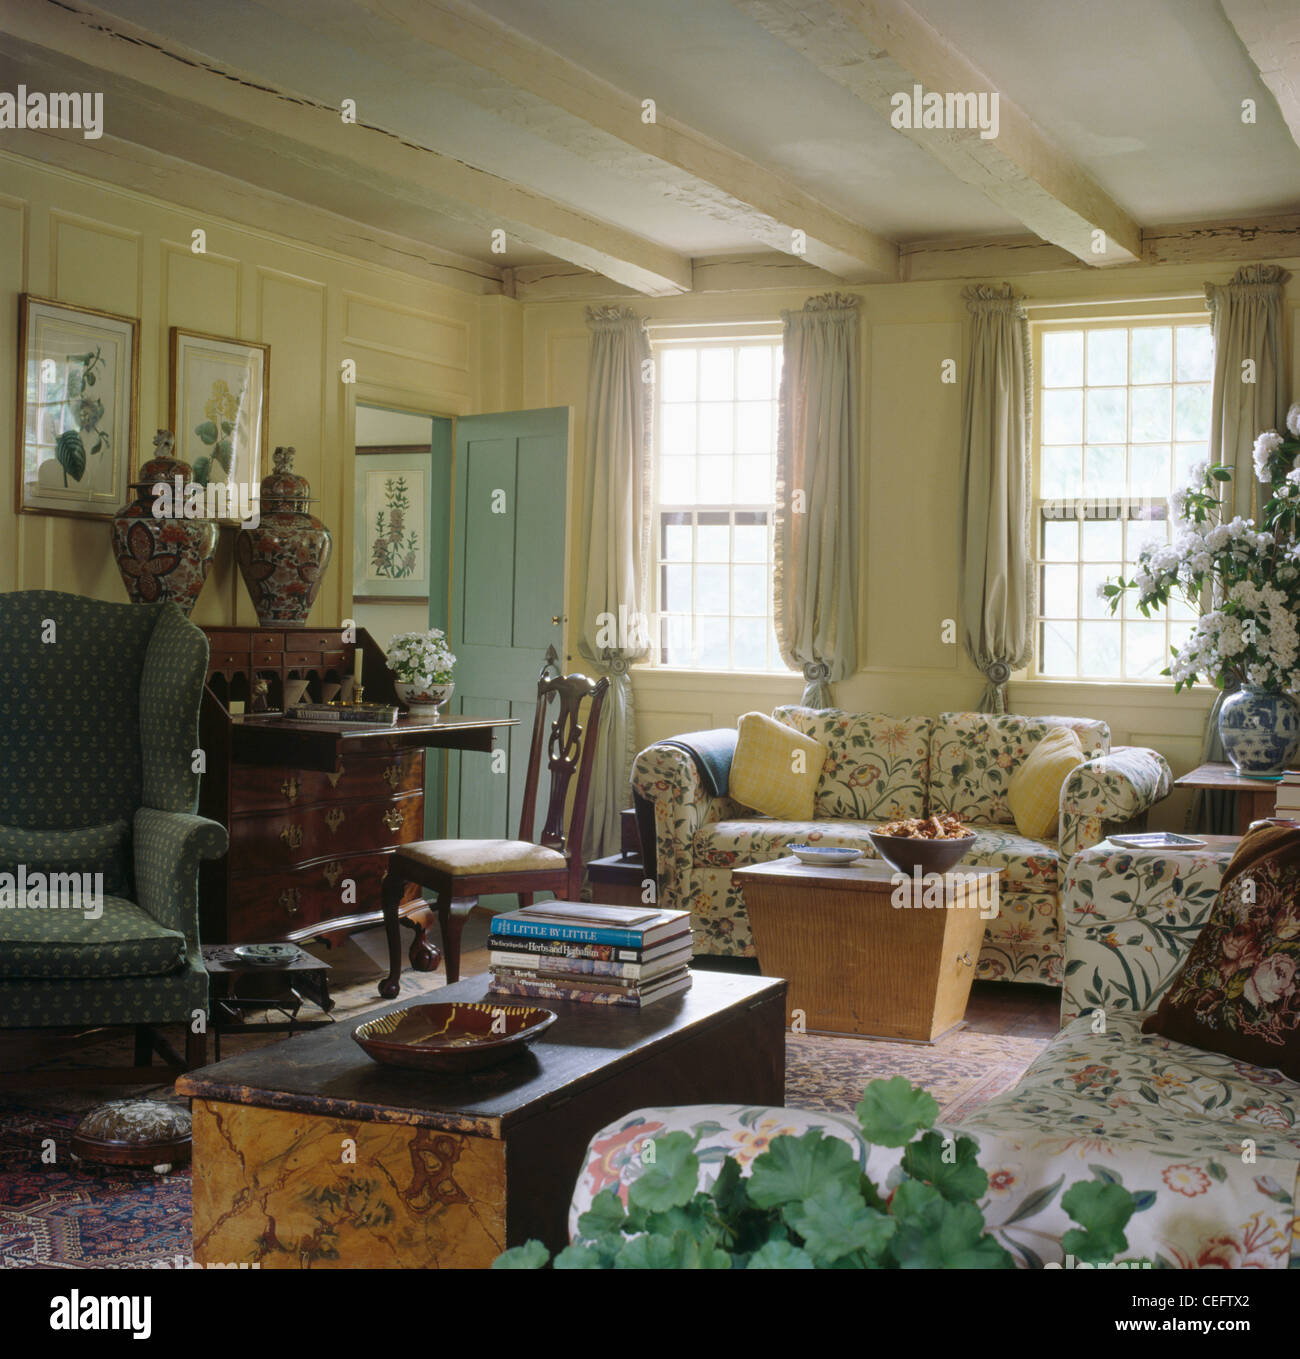 Old Painted Pine Chests And Floral Sofas In Country Living Room With Cream  Painted Ceiling Beams